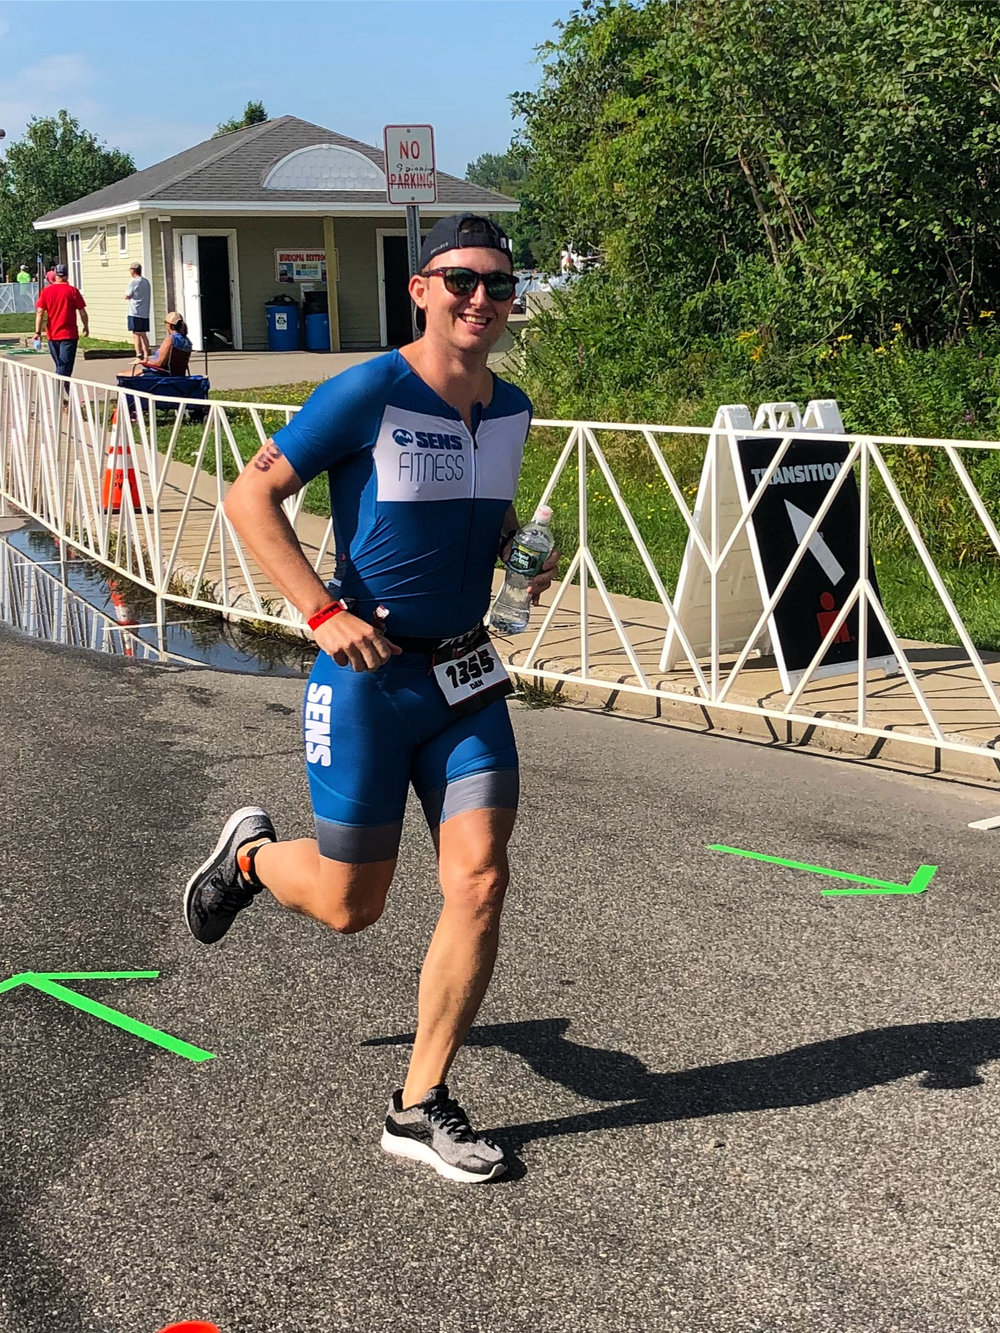 Dan Eversmeyer - HITS Olympic Distance Hudson Valley, NY 2018Fastest overall swim (29:11)Ironman 70.3 MaineTop 15 Swim in AG 30-34 (28:12)